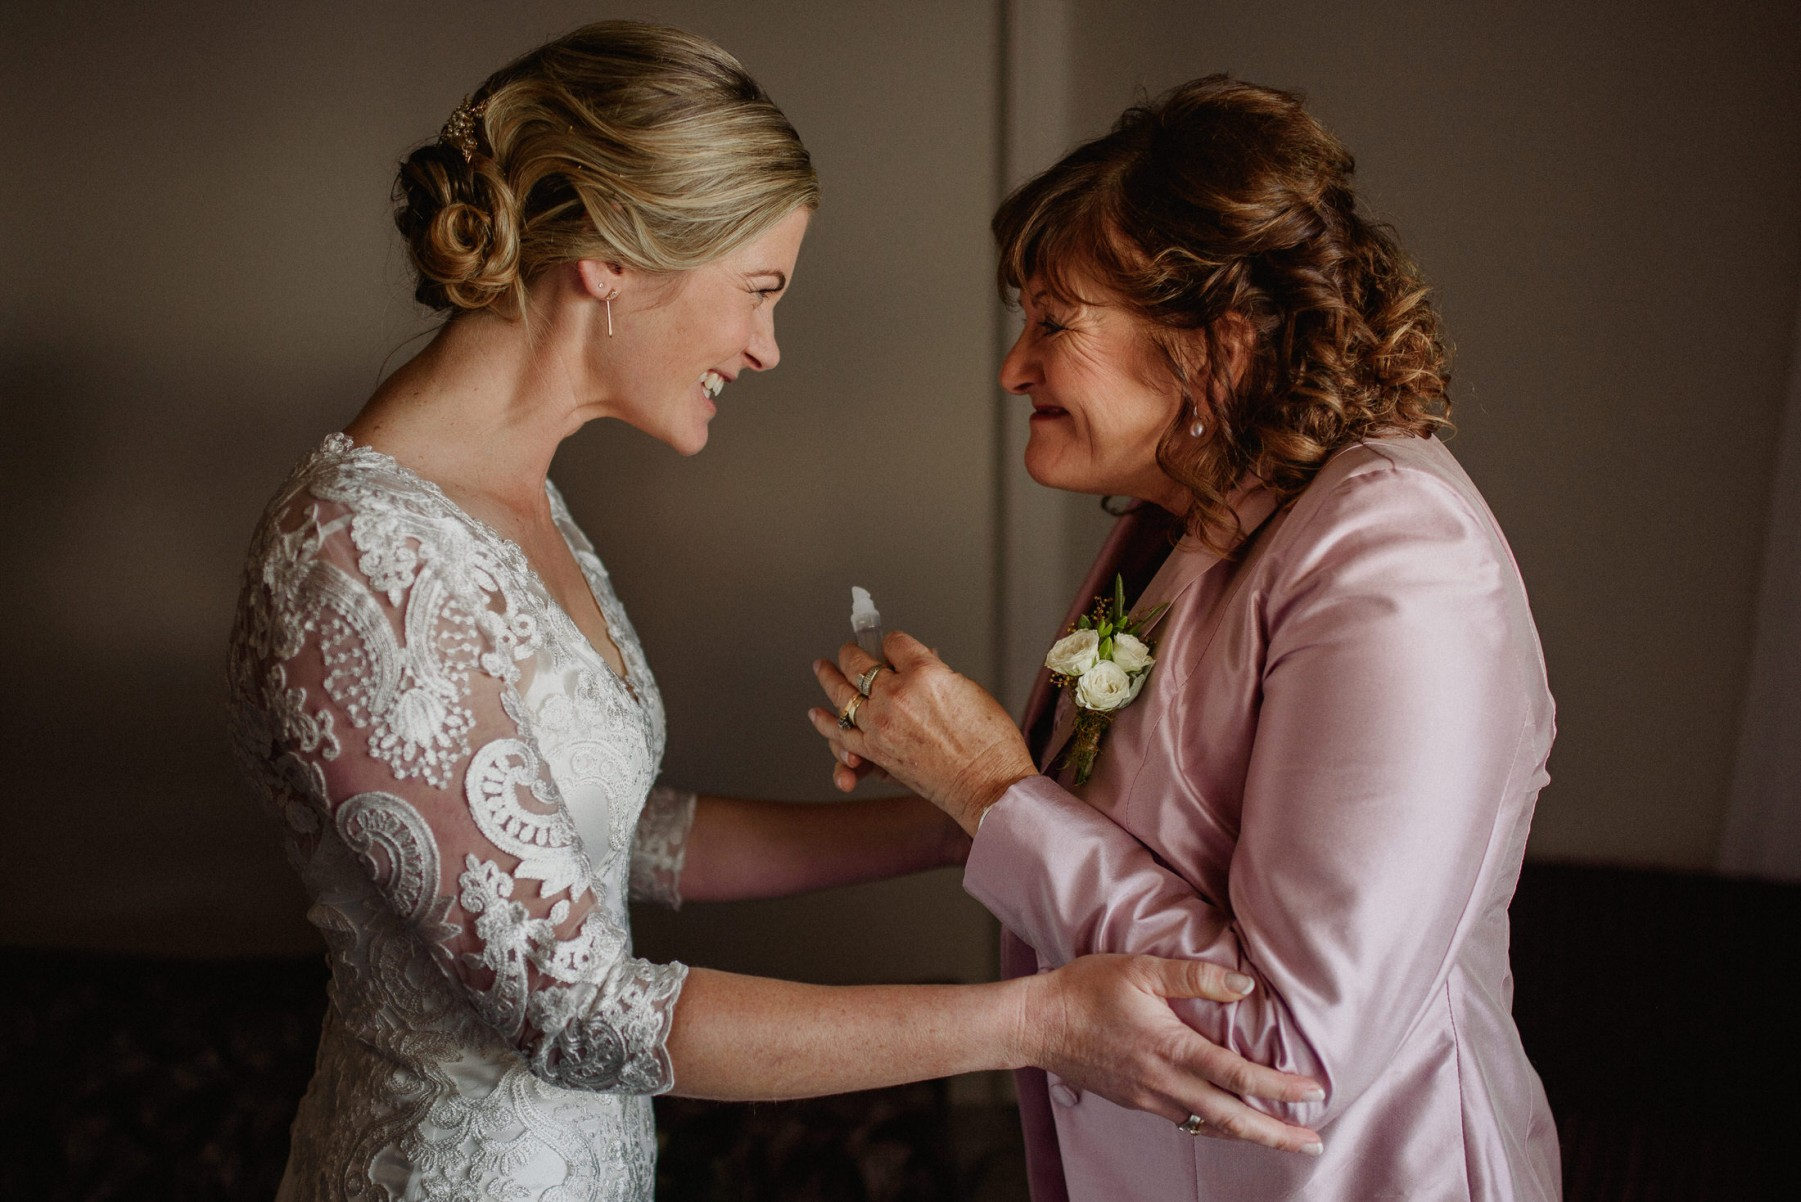 wedding, day, morning, bride, mother, mom, daughter, happy, photography